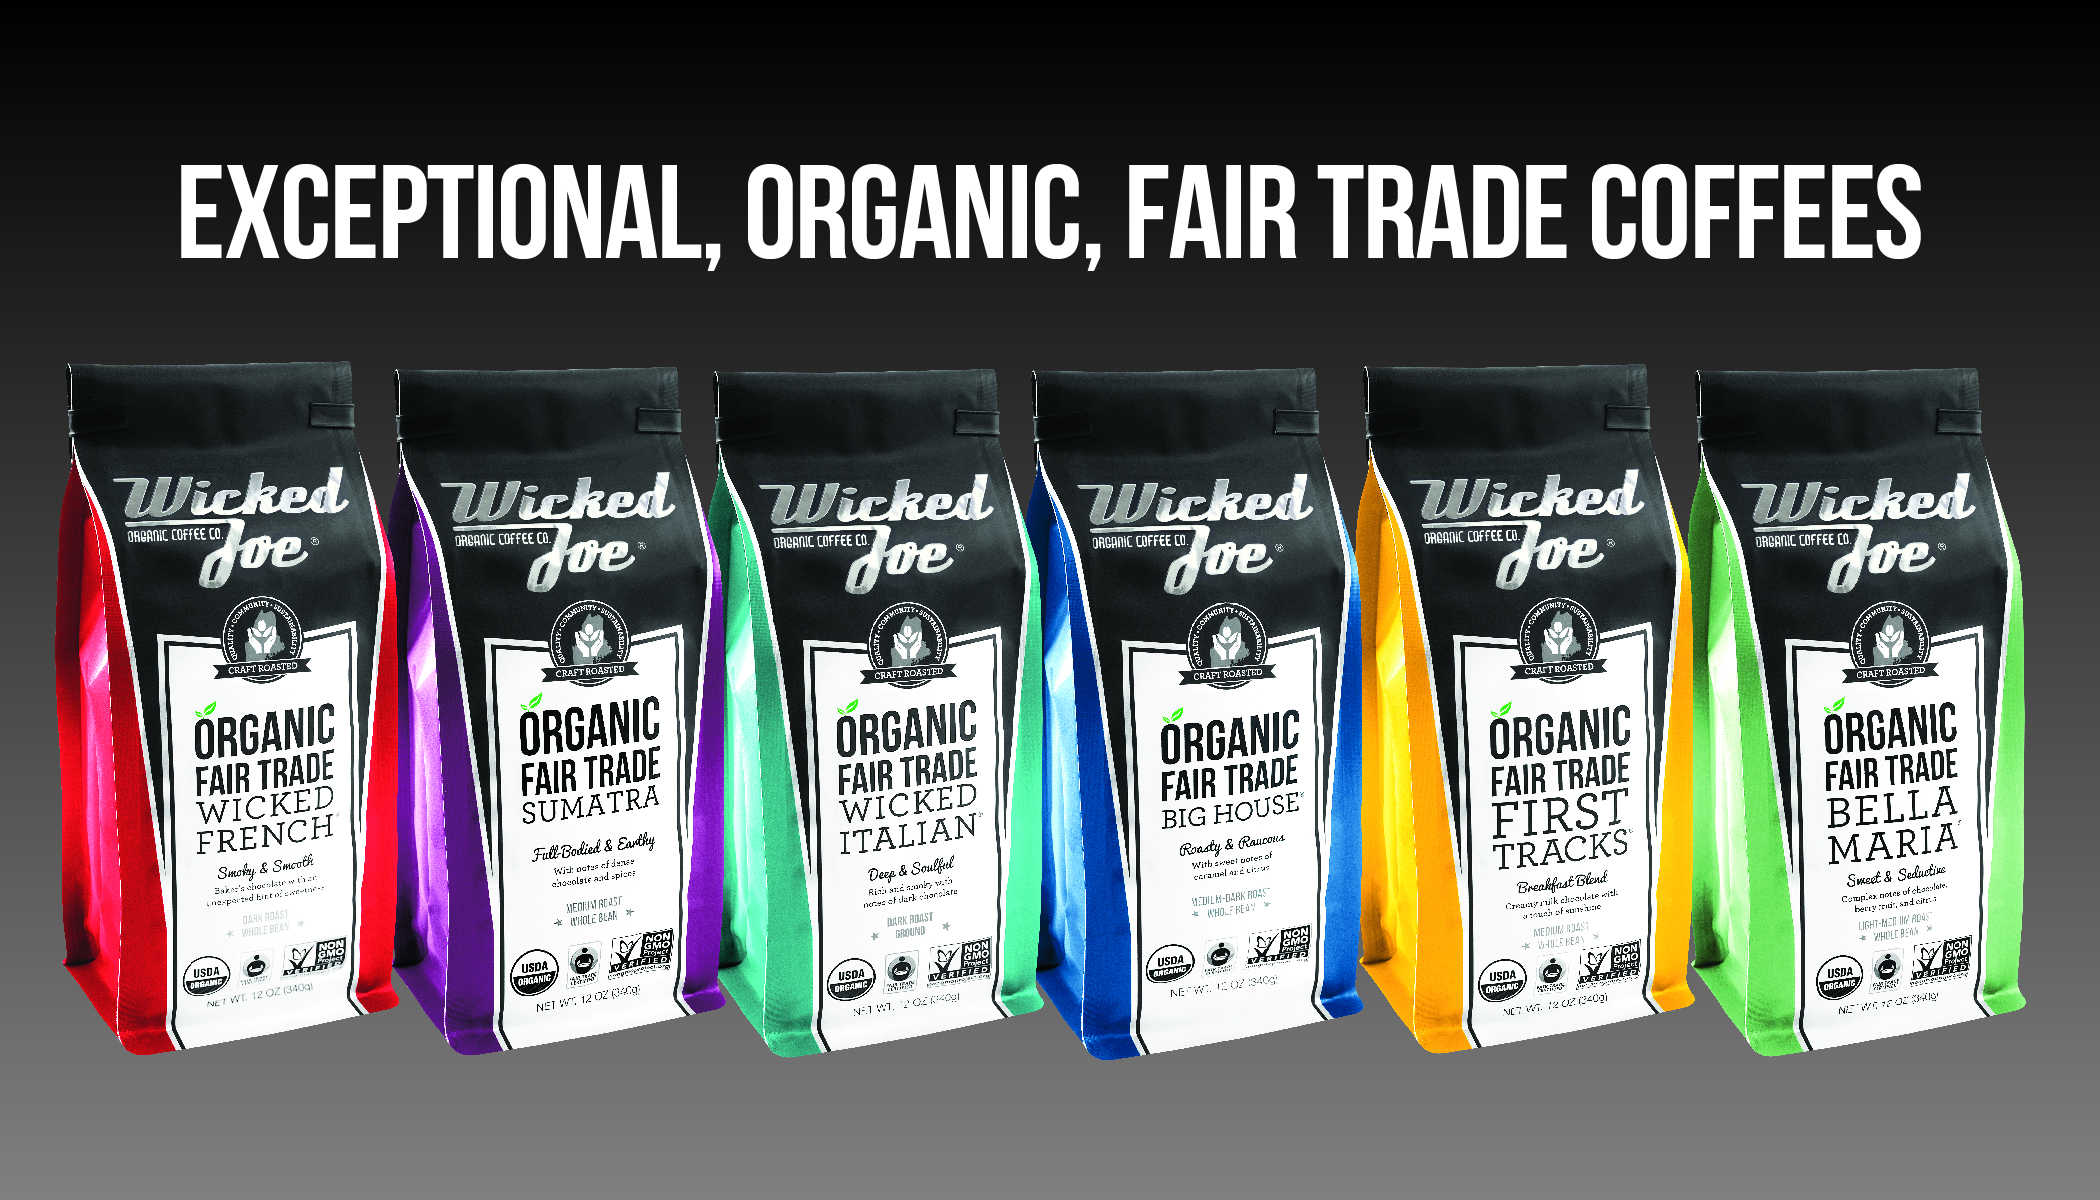 Amber Caron WJC.BagsLineUp.v1 - Wicked Joe Organic Coffees Celebrates New Look